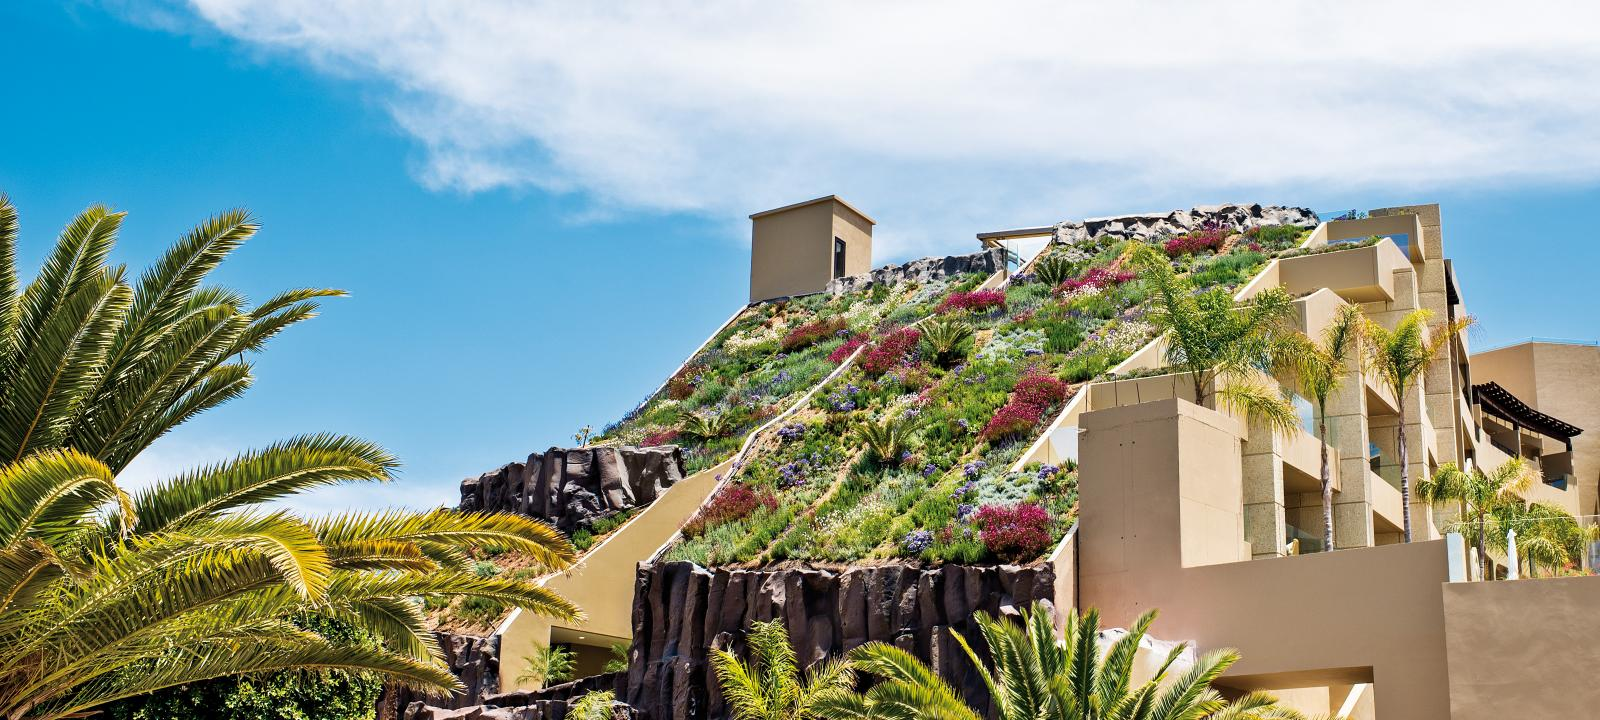 Steep pitched green roof with colourful vegetation